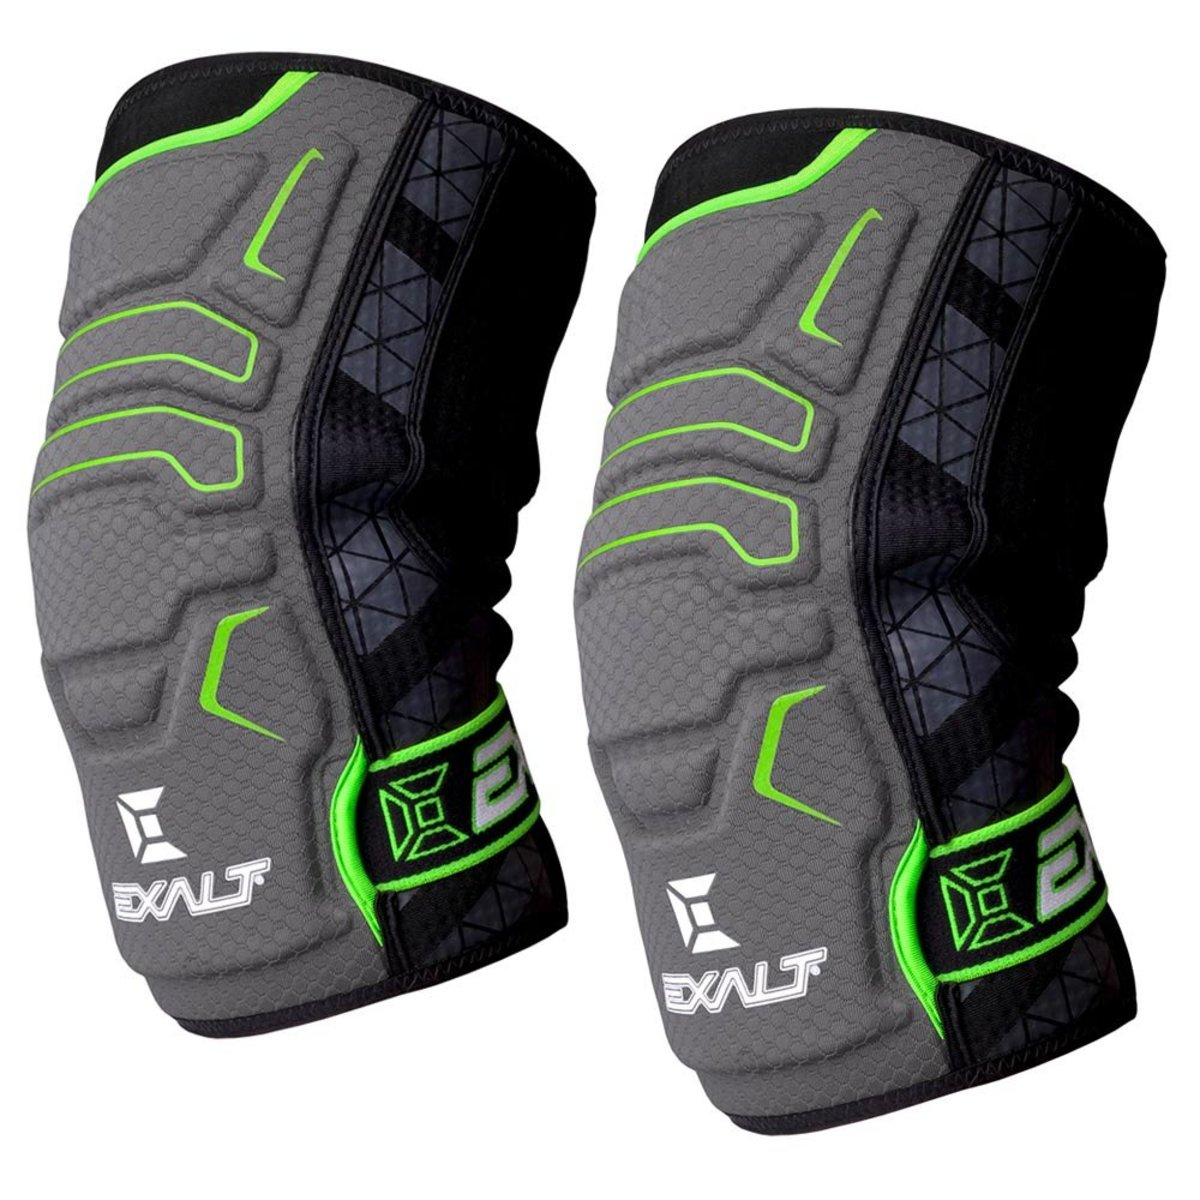 View larger image of Exalt FreeFlex Paintball Knee Pads